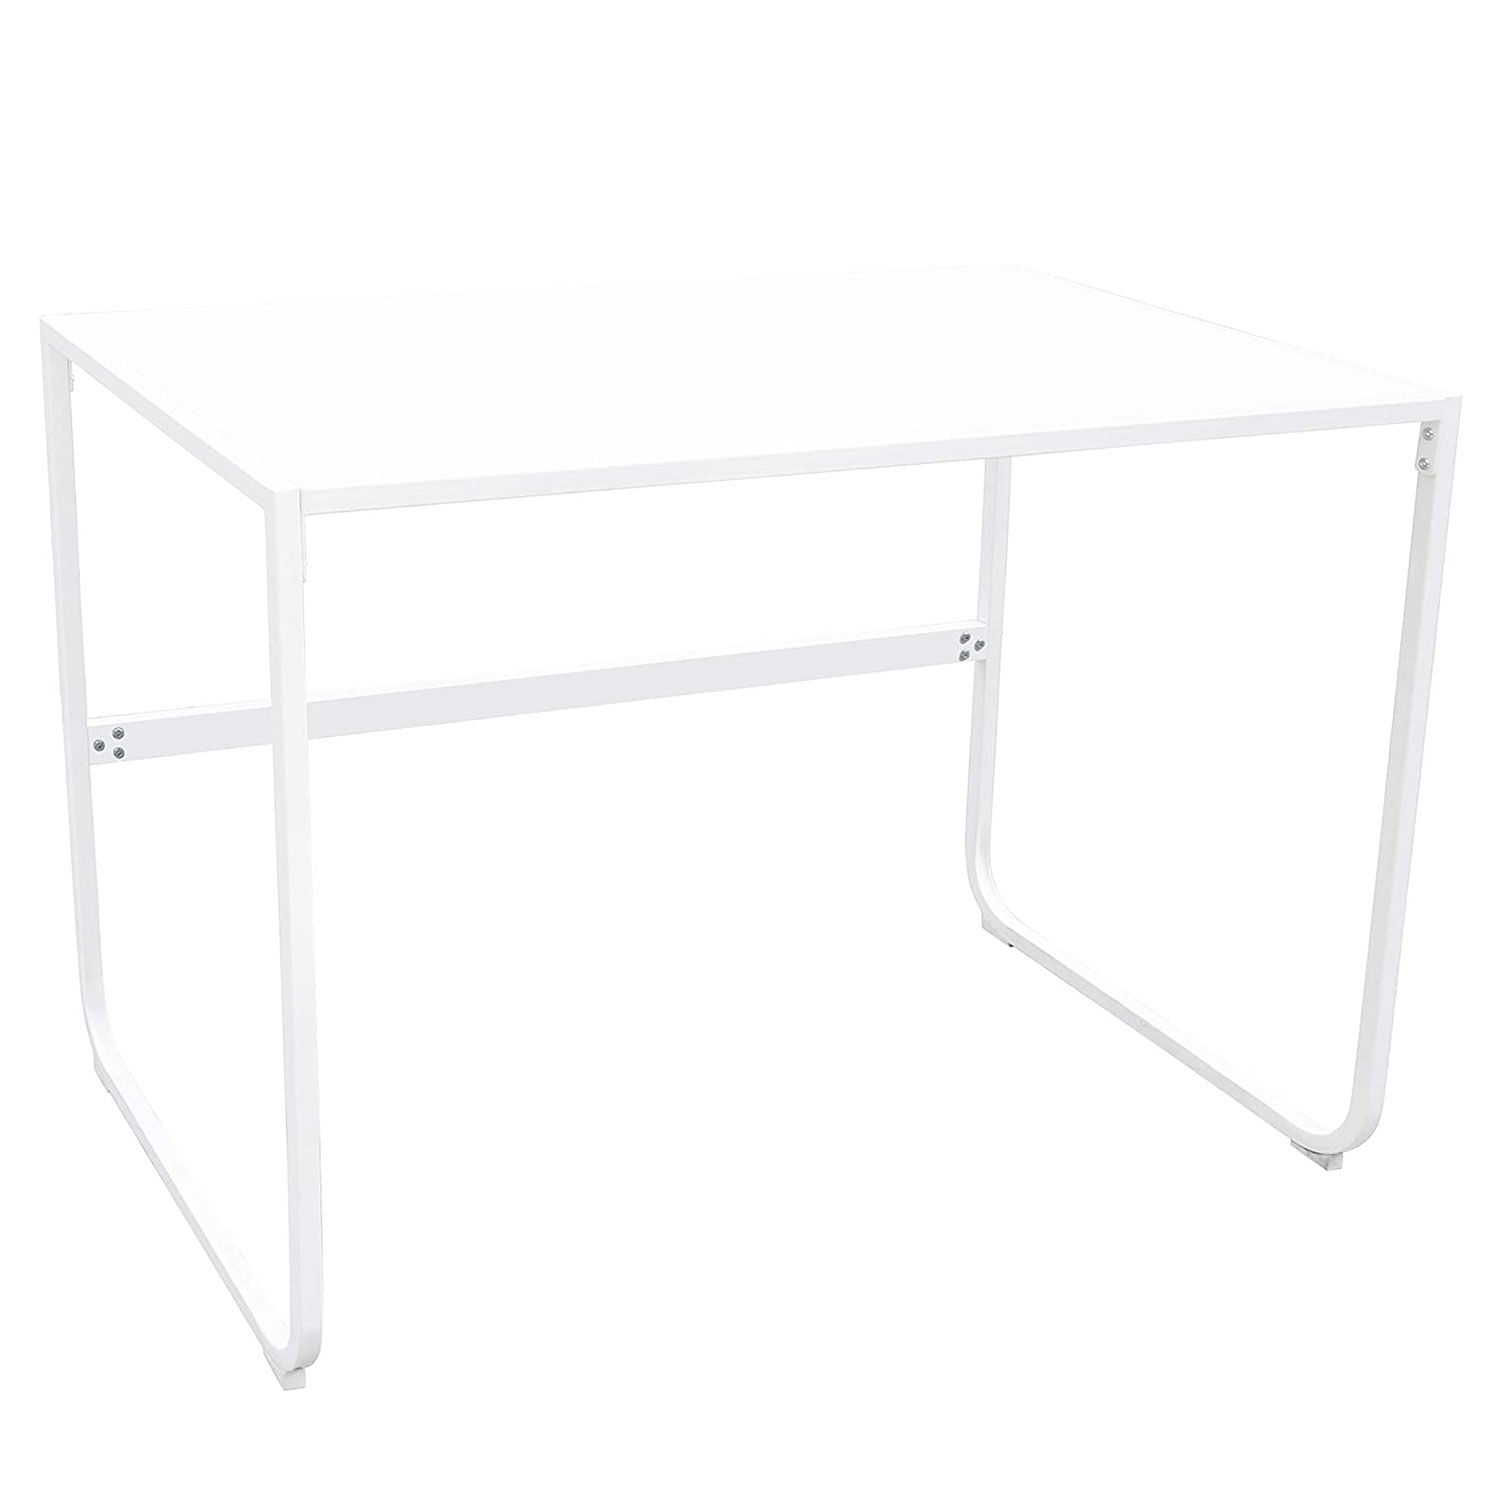 Nathan James Penny Writing Desk with Sleek Curved Metal Frame for Home or Office